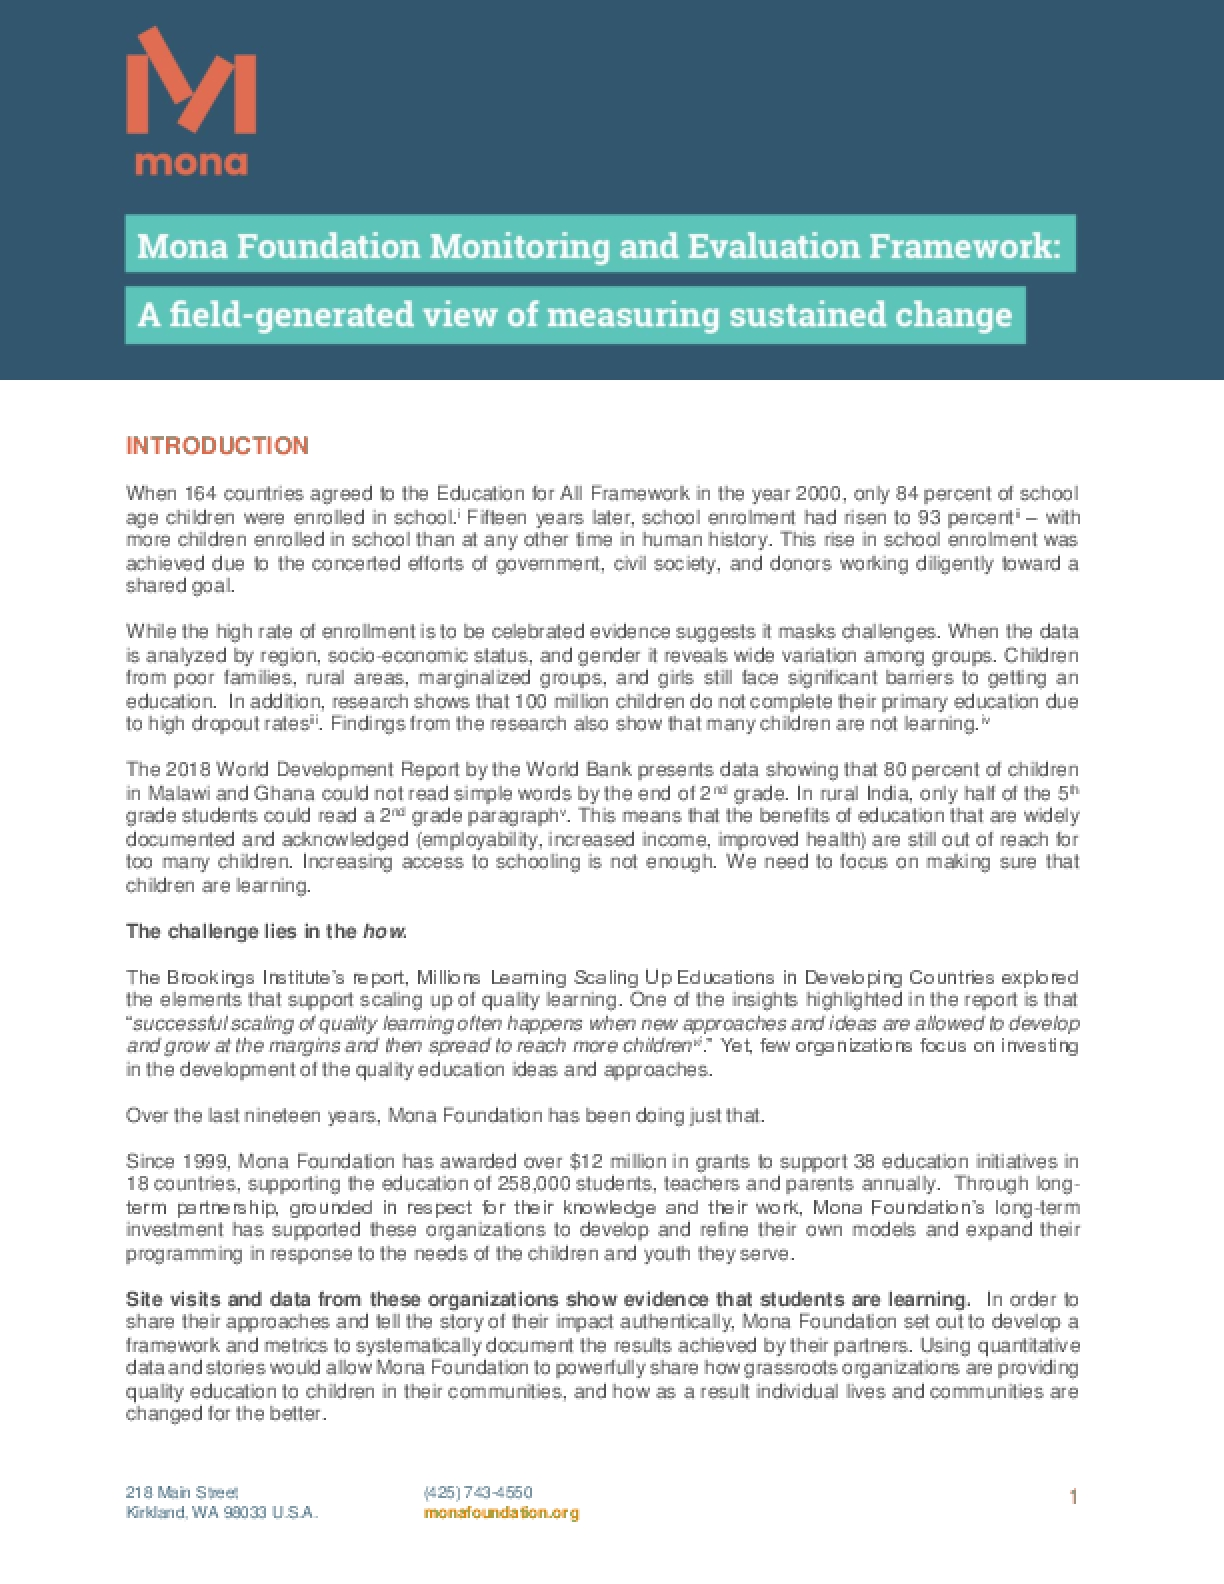 Mona Foundation Monitoring Evaluation Framework: A Field-generated View of Measuring Sustained Change